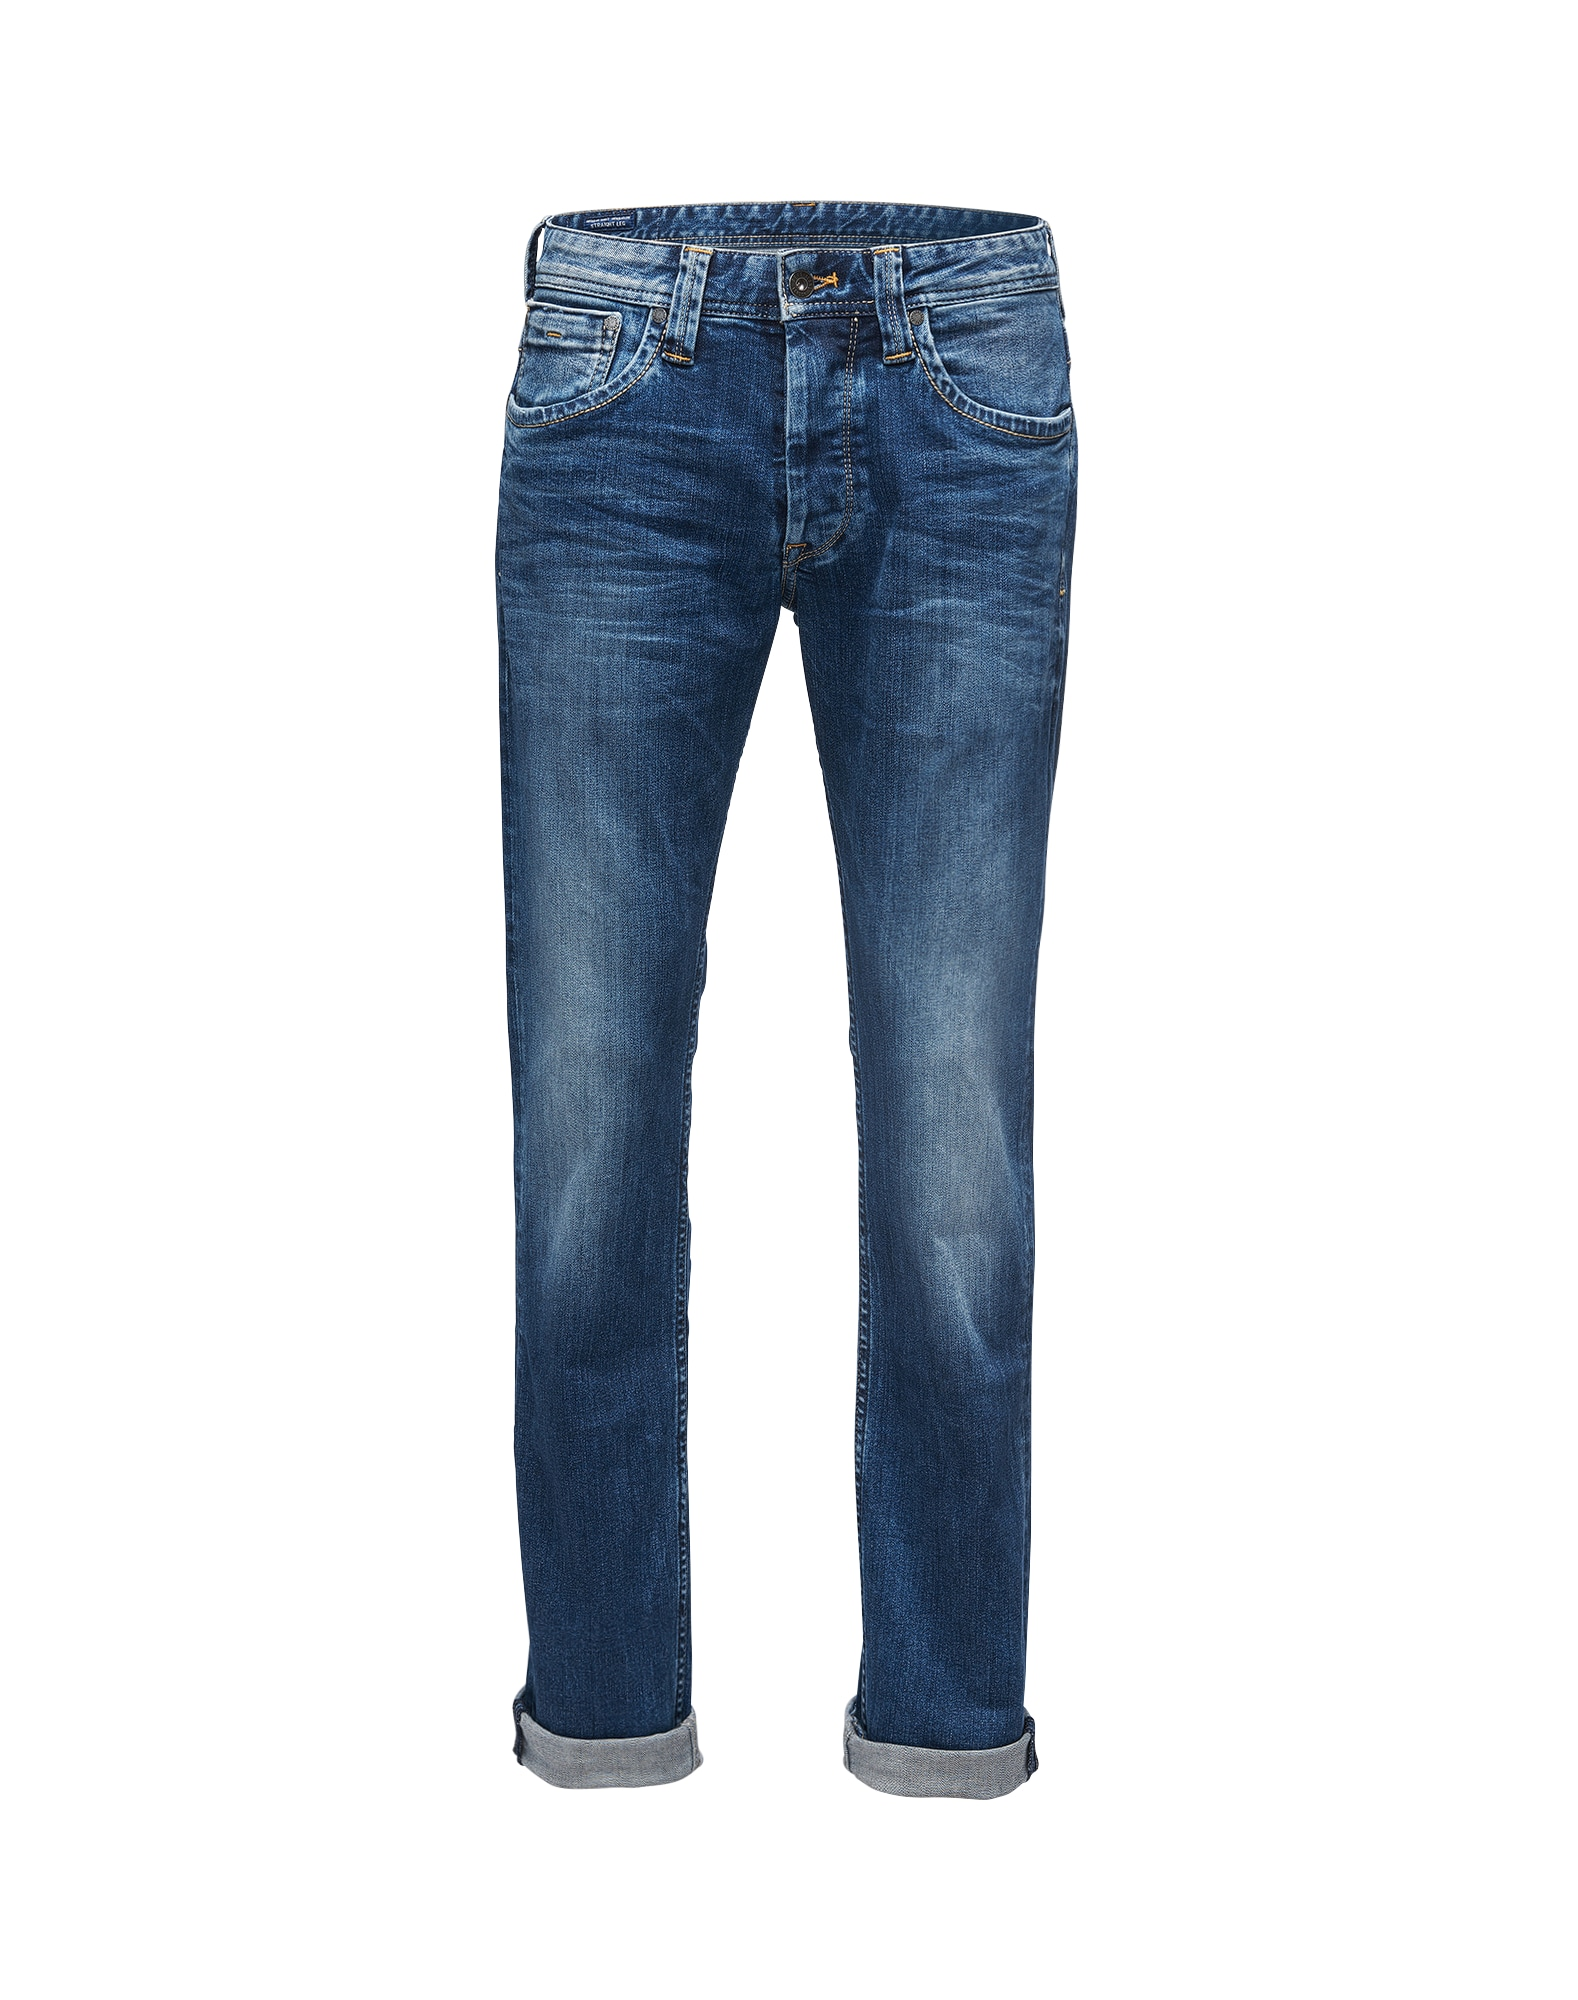 Pepe Jeans Heren Jeans Cash blauw denim